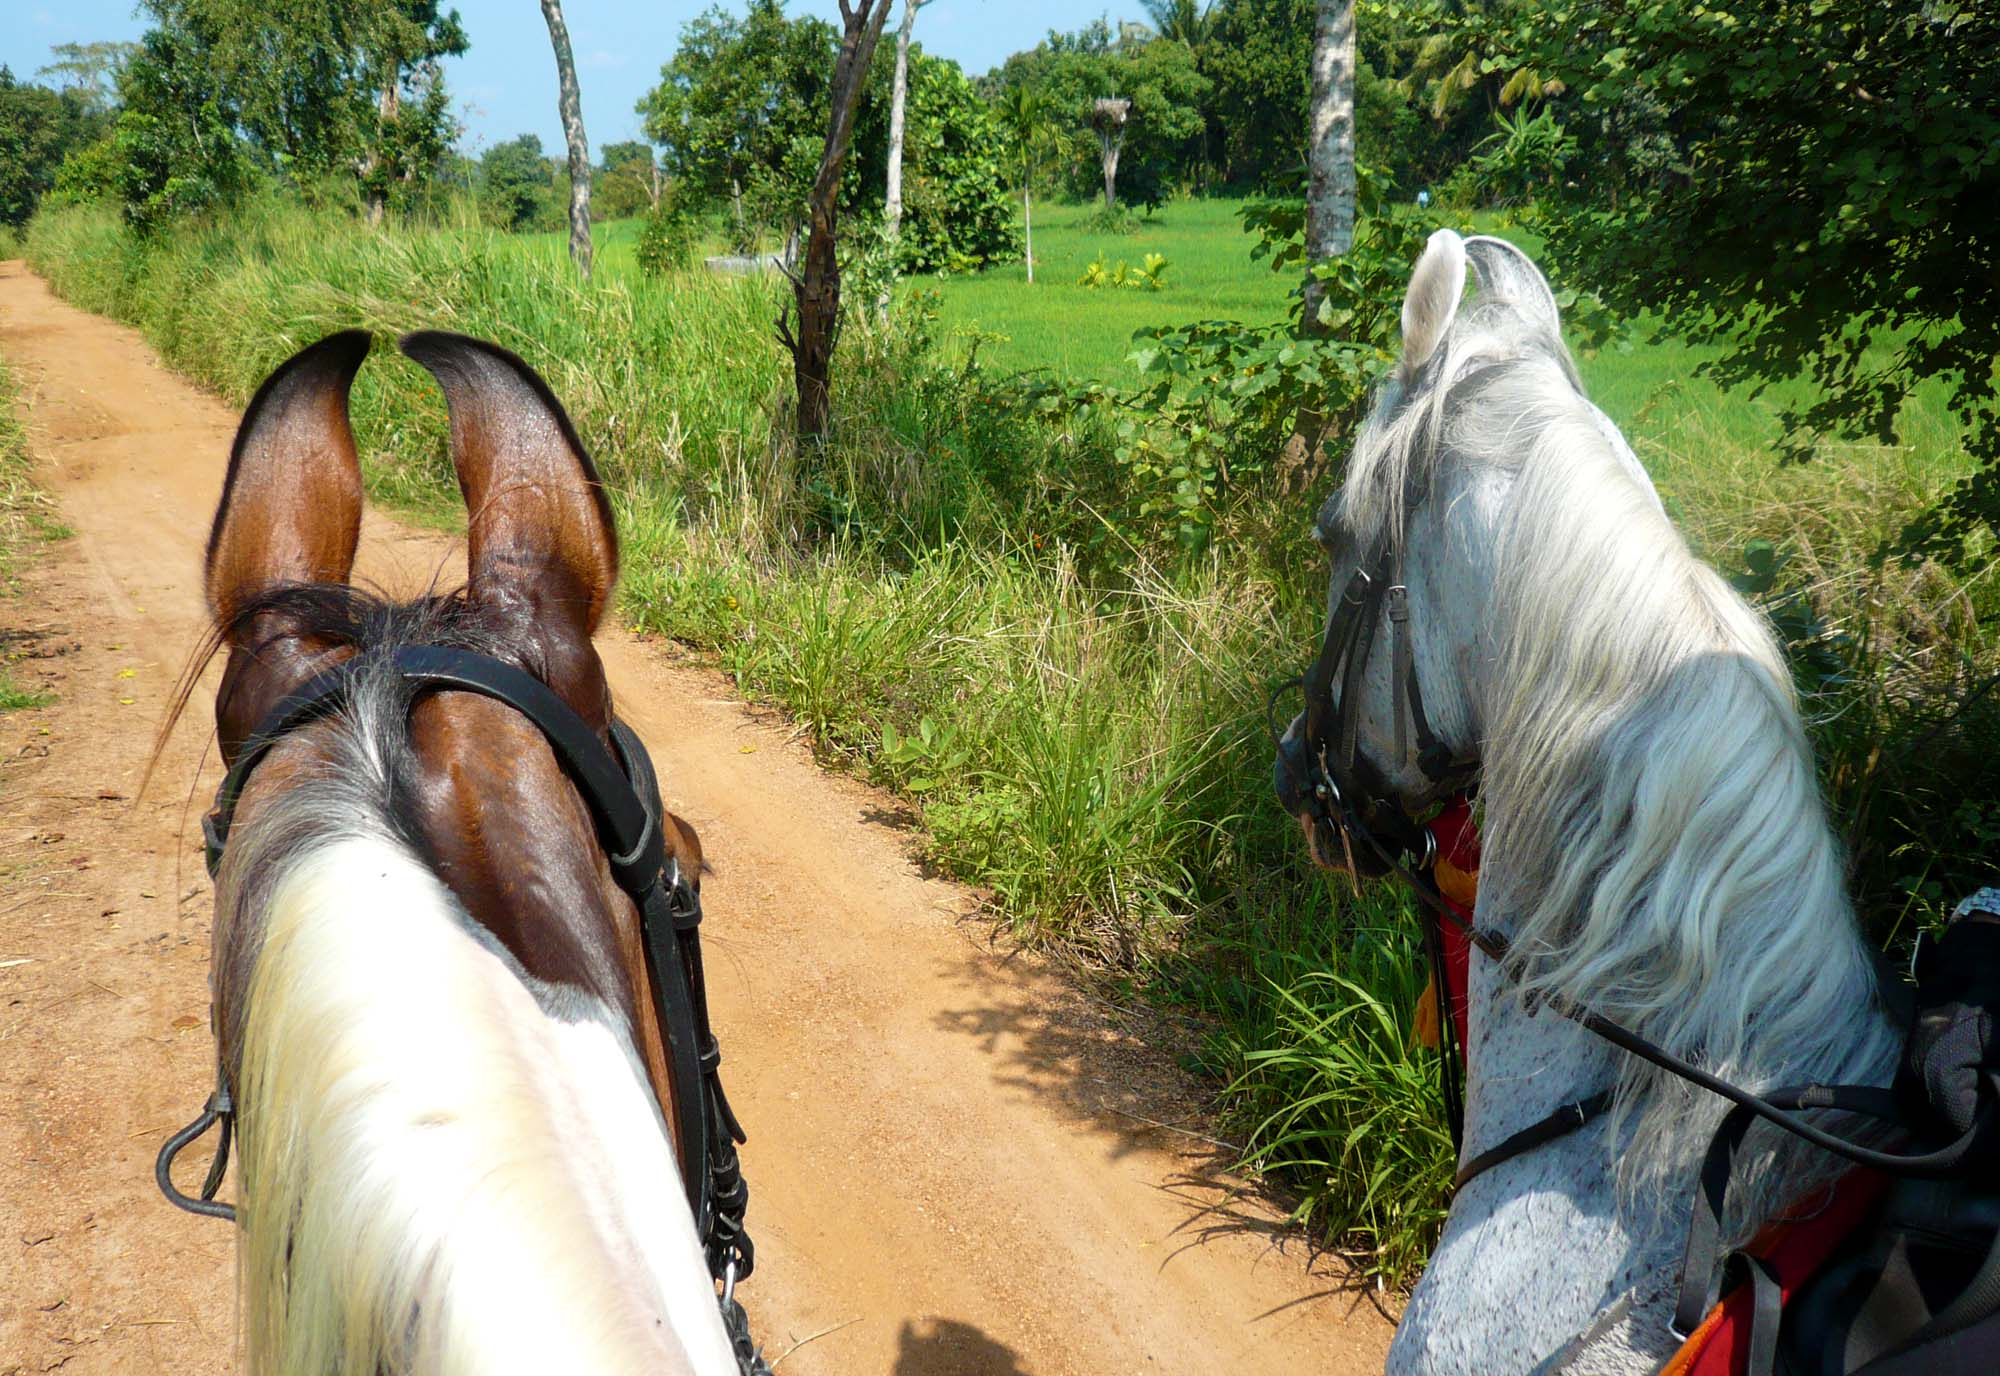 ©Randocheval - Sri Lanka/Chevaux Marwaris